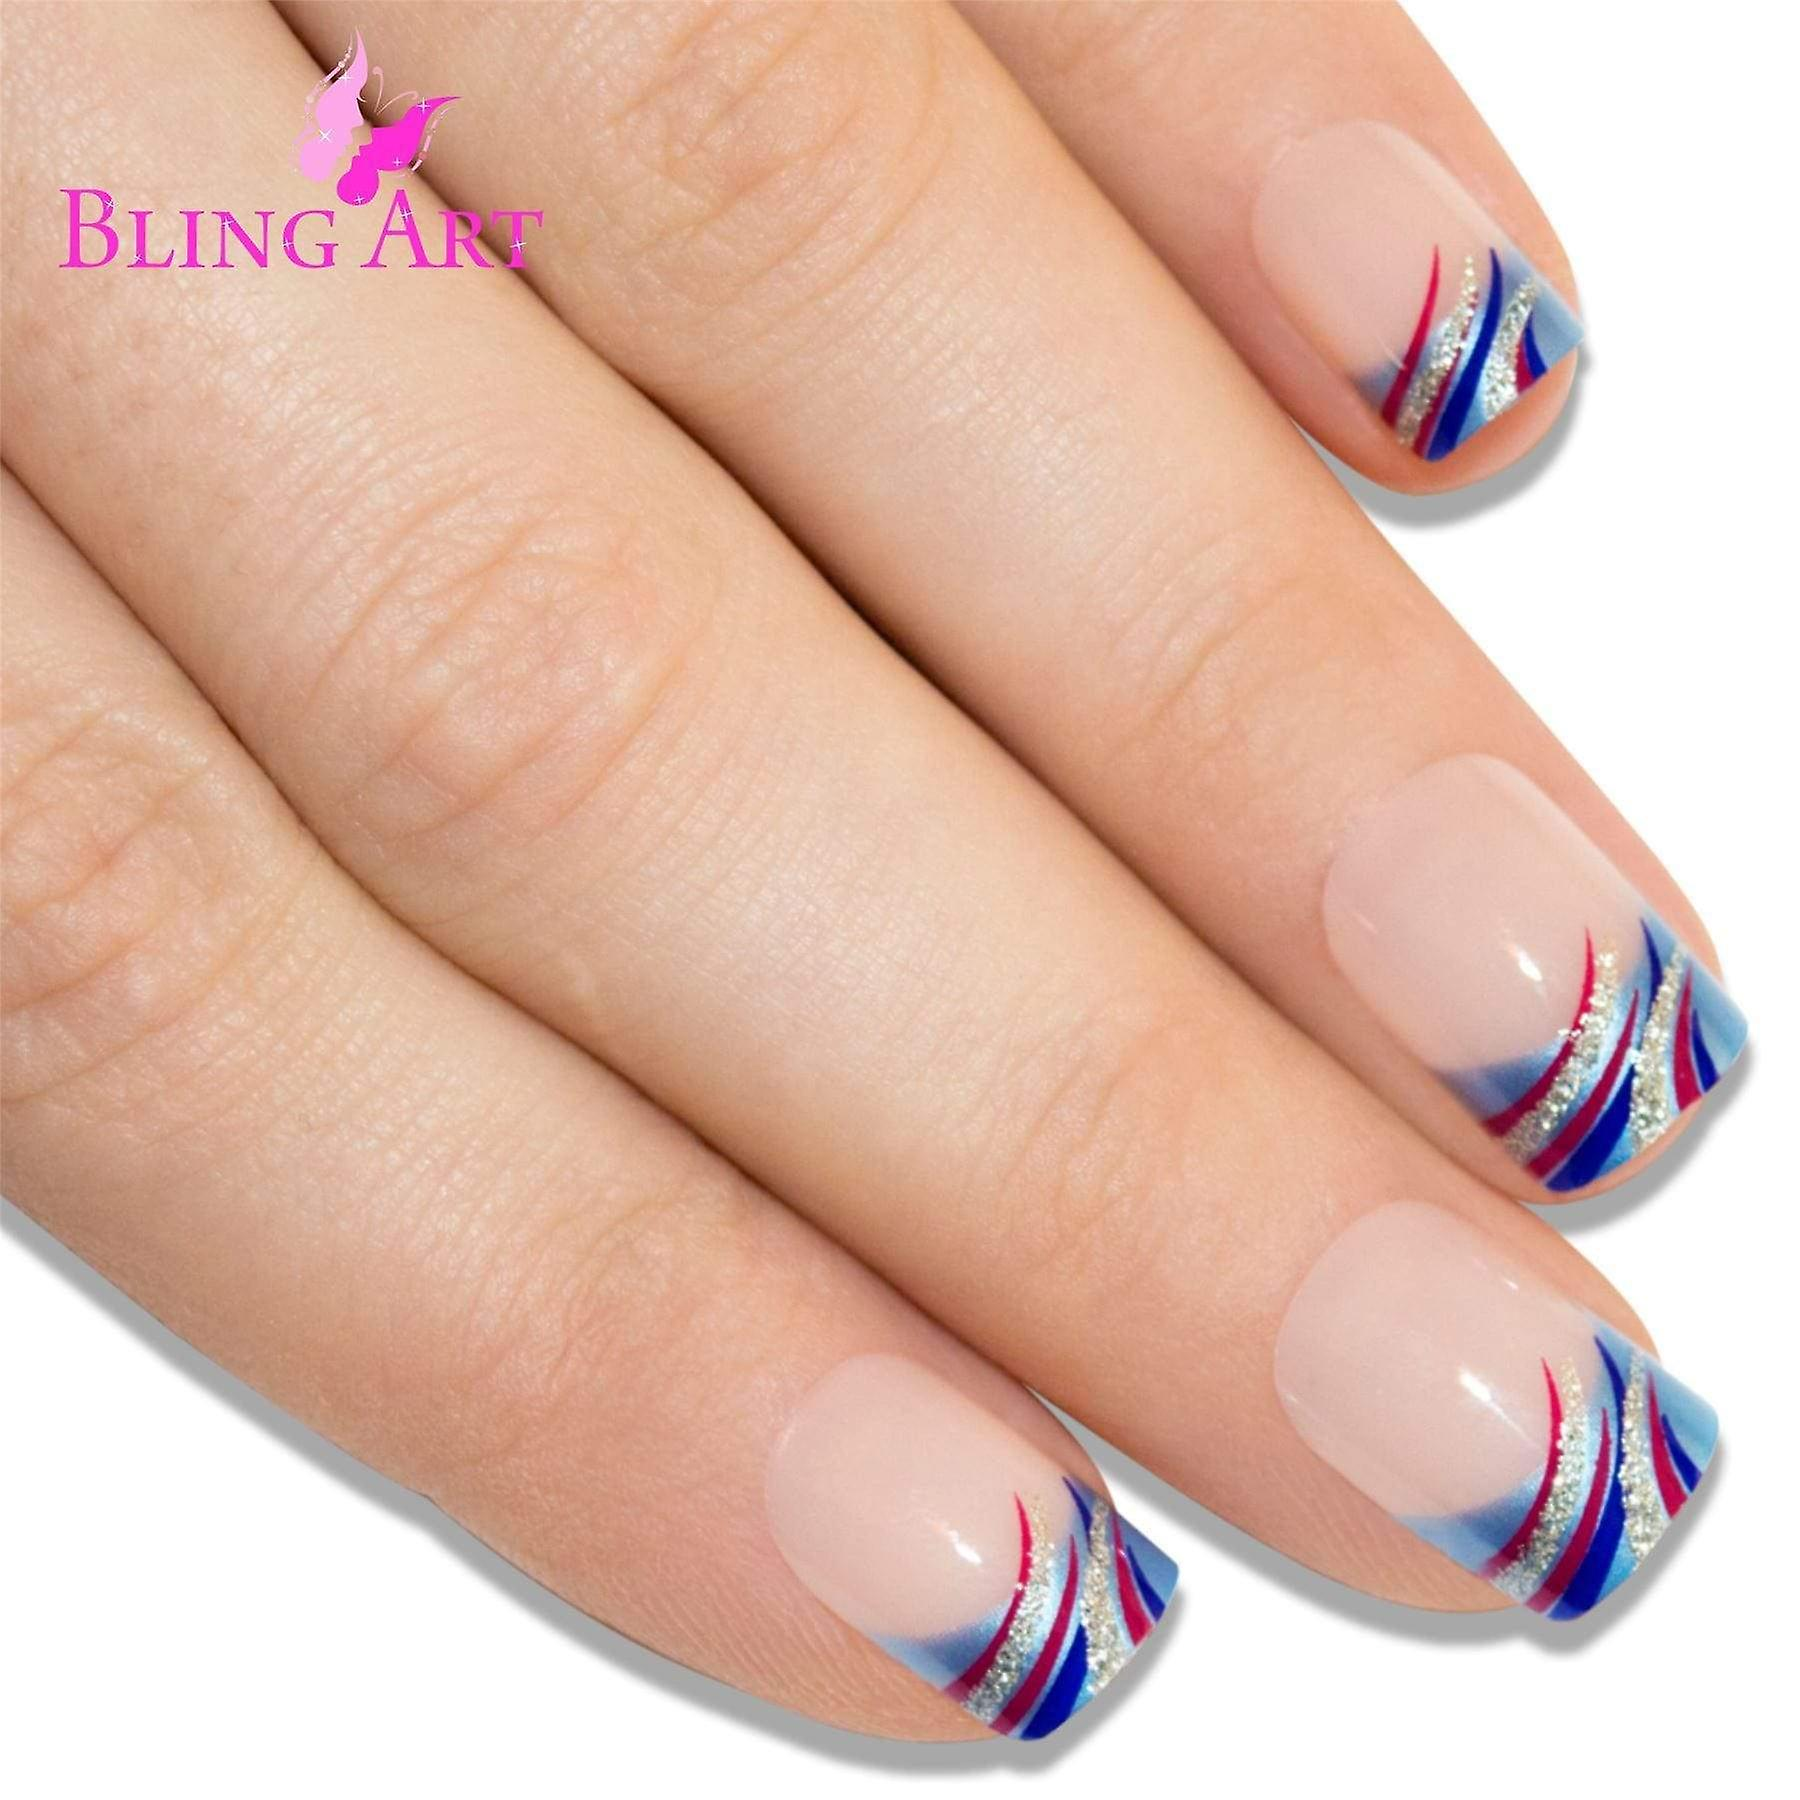 False nails by bling art glitter blue french manicure fake medium tips with glue